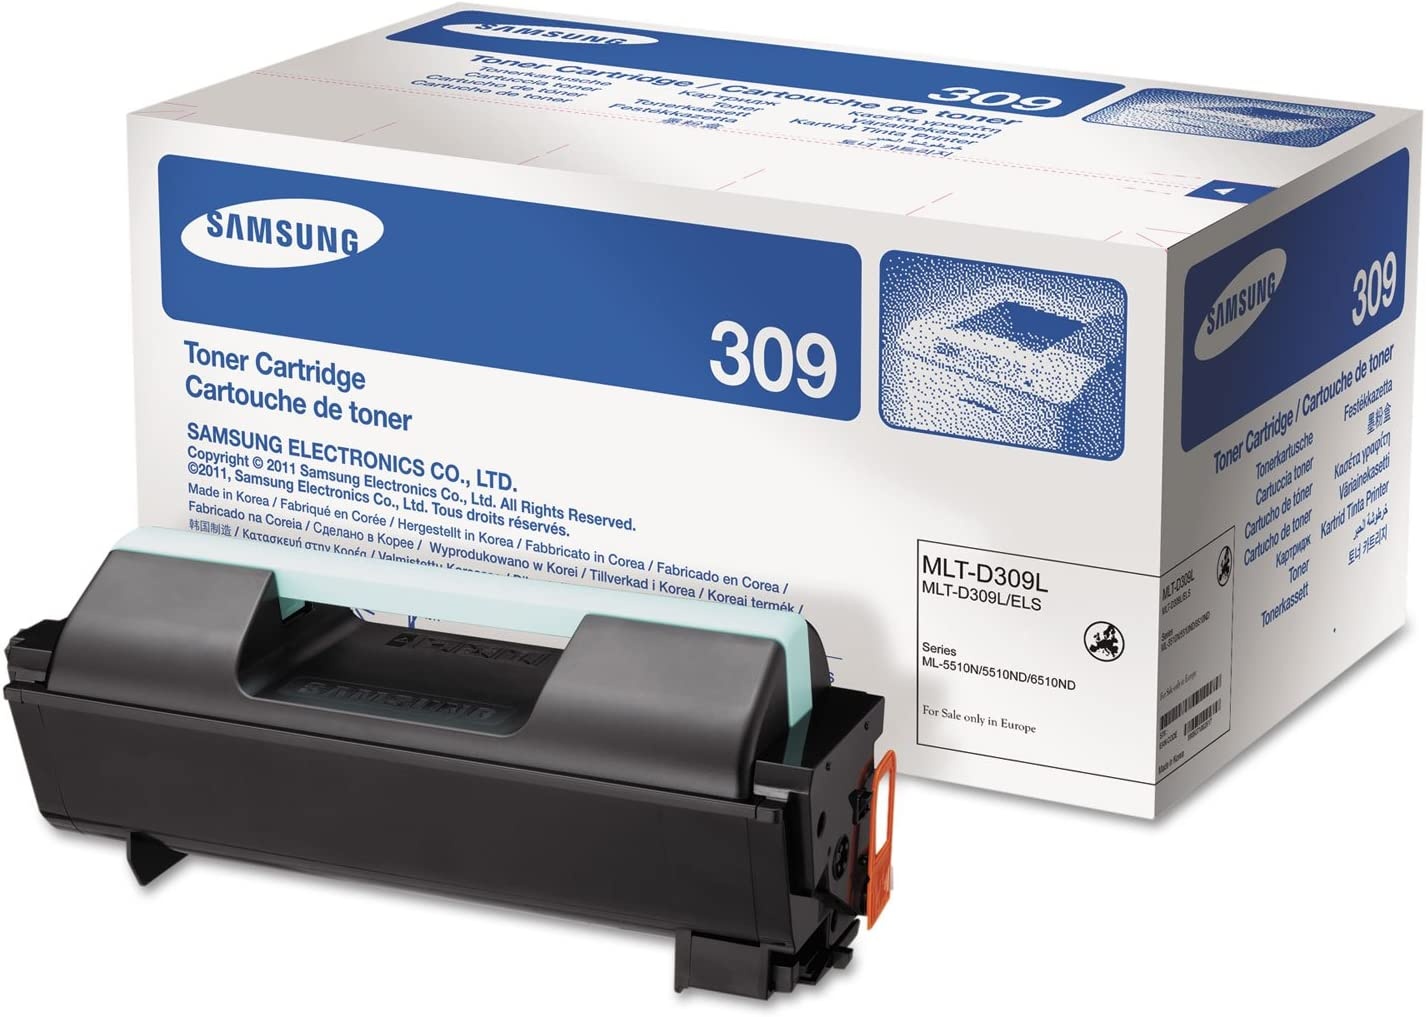 Compatible with Samsung MLT-D309L Toner Cartridge for Samsung ML-5510 5512ND ML-6510ND 6512ND Printer Cartridge,D309L